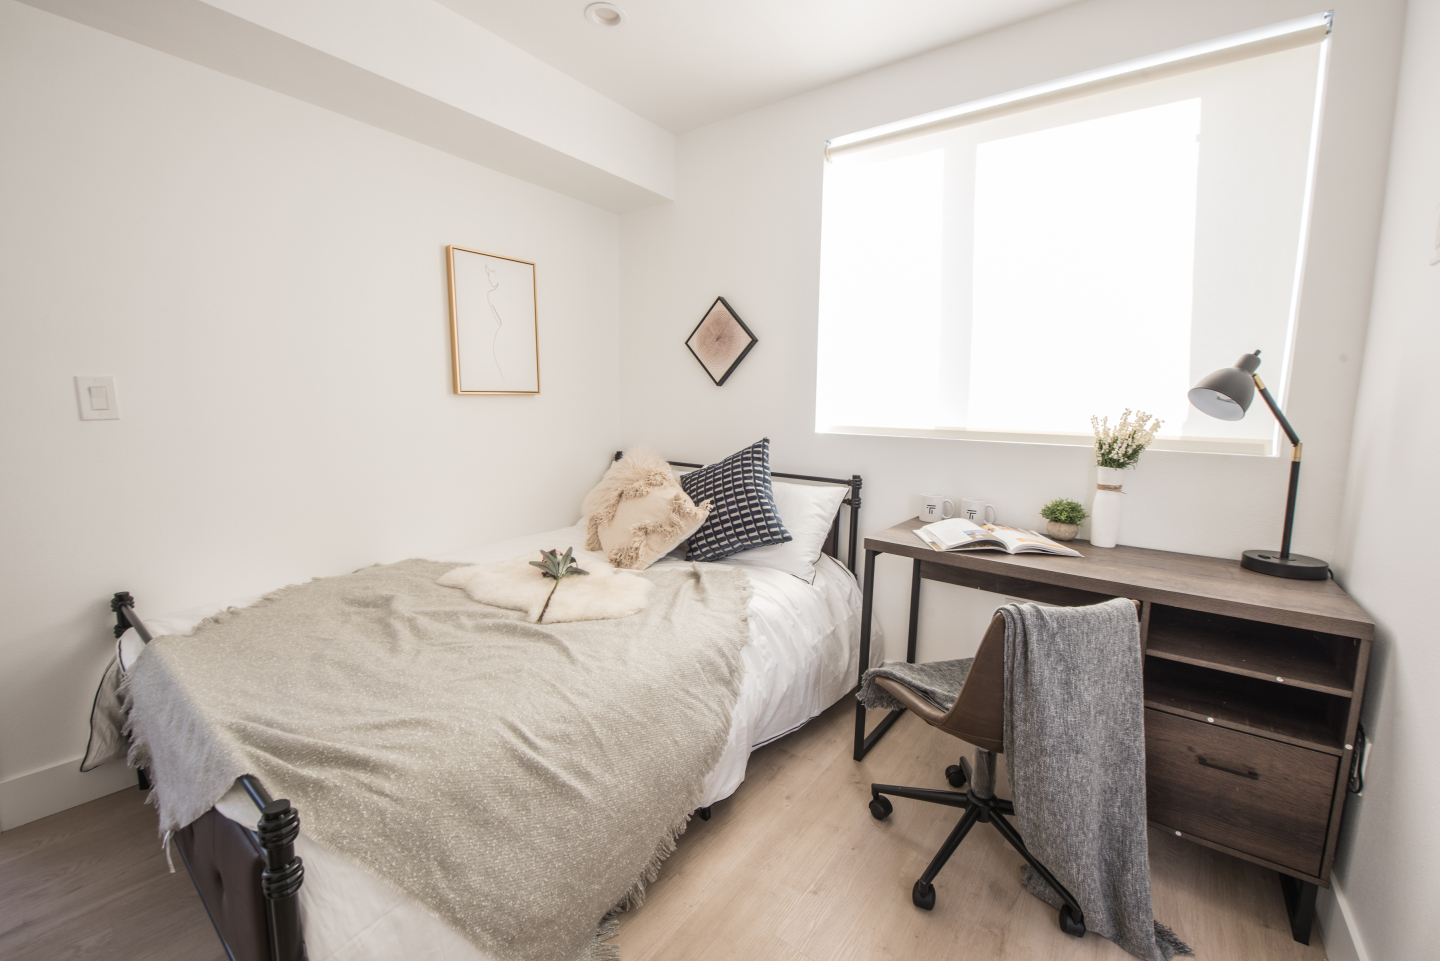 Bedroom with wood floors and desk area